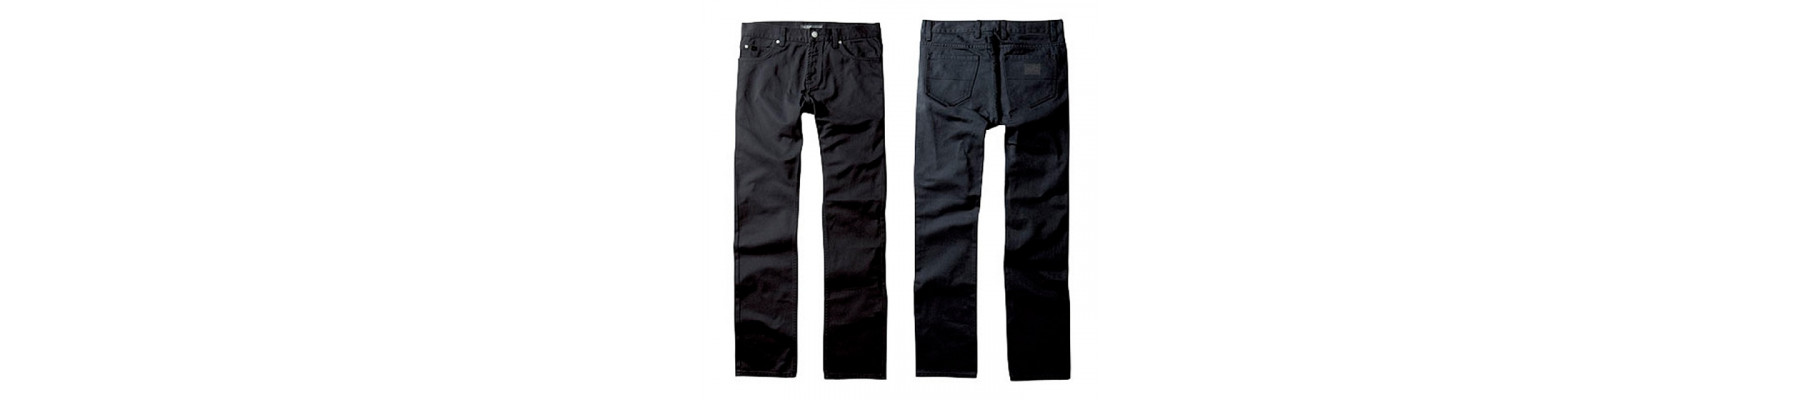 Fallen Slim Fit Jet Black